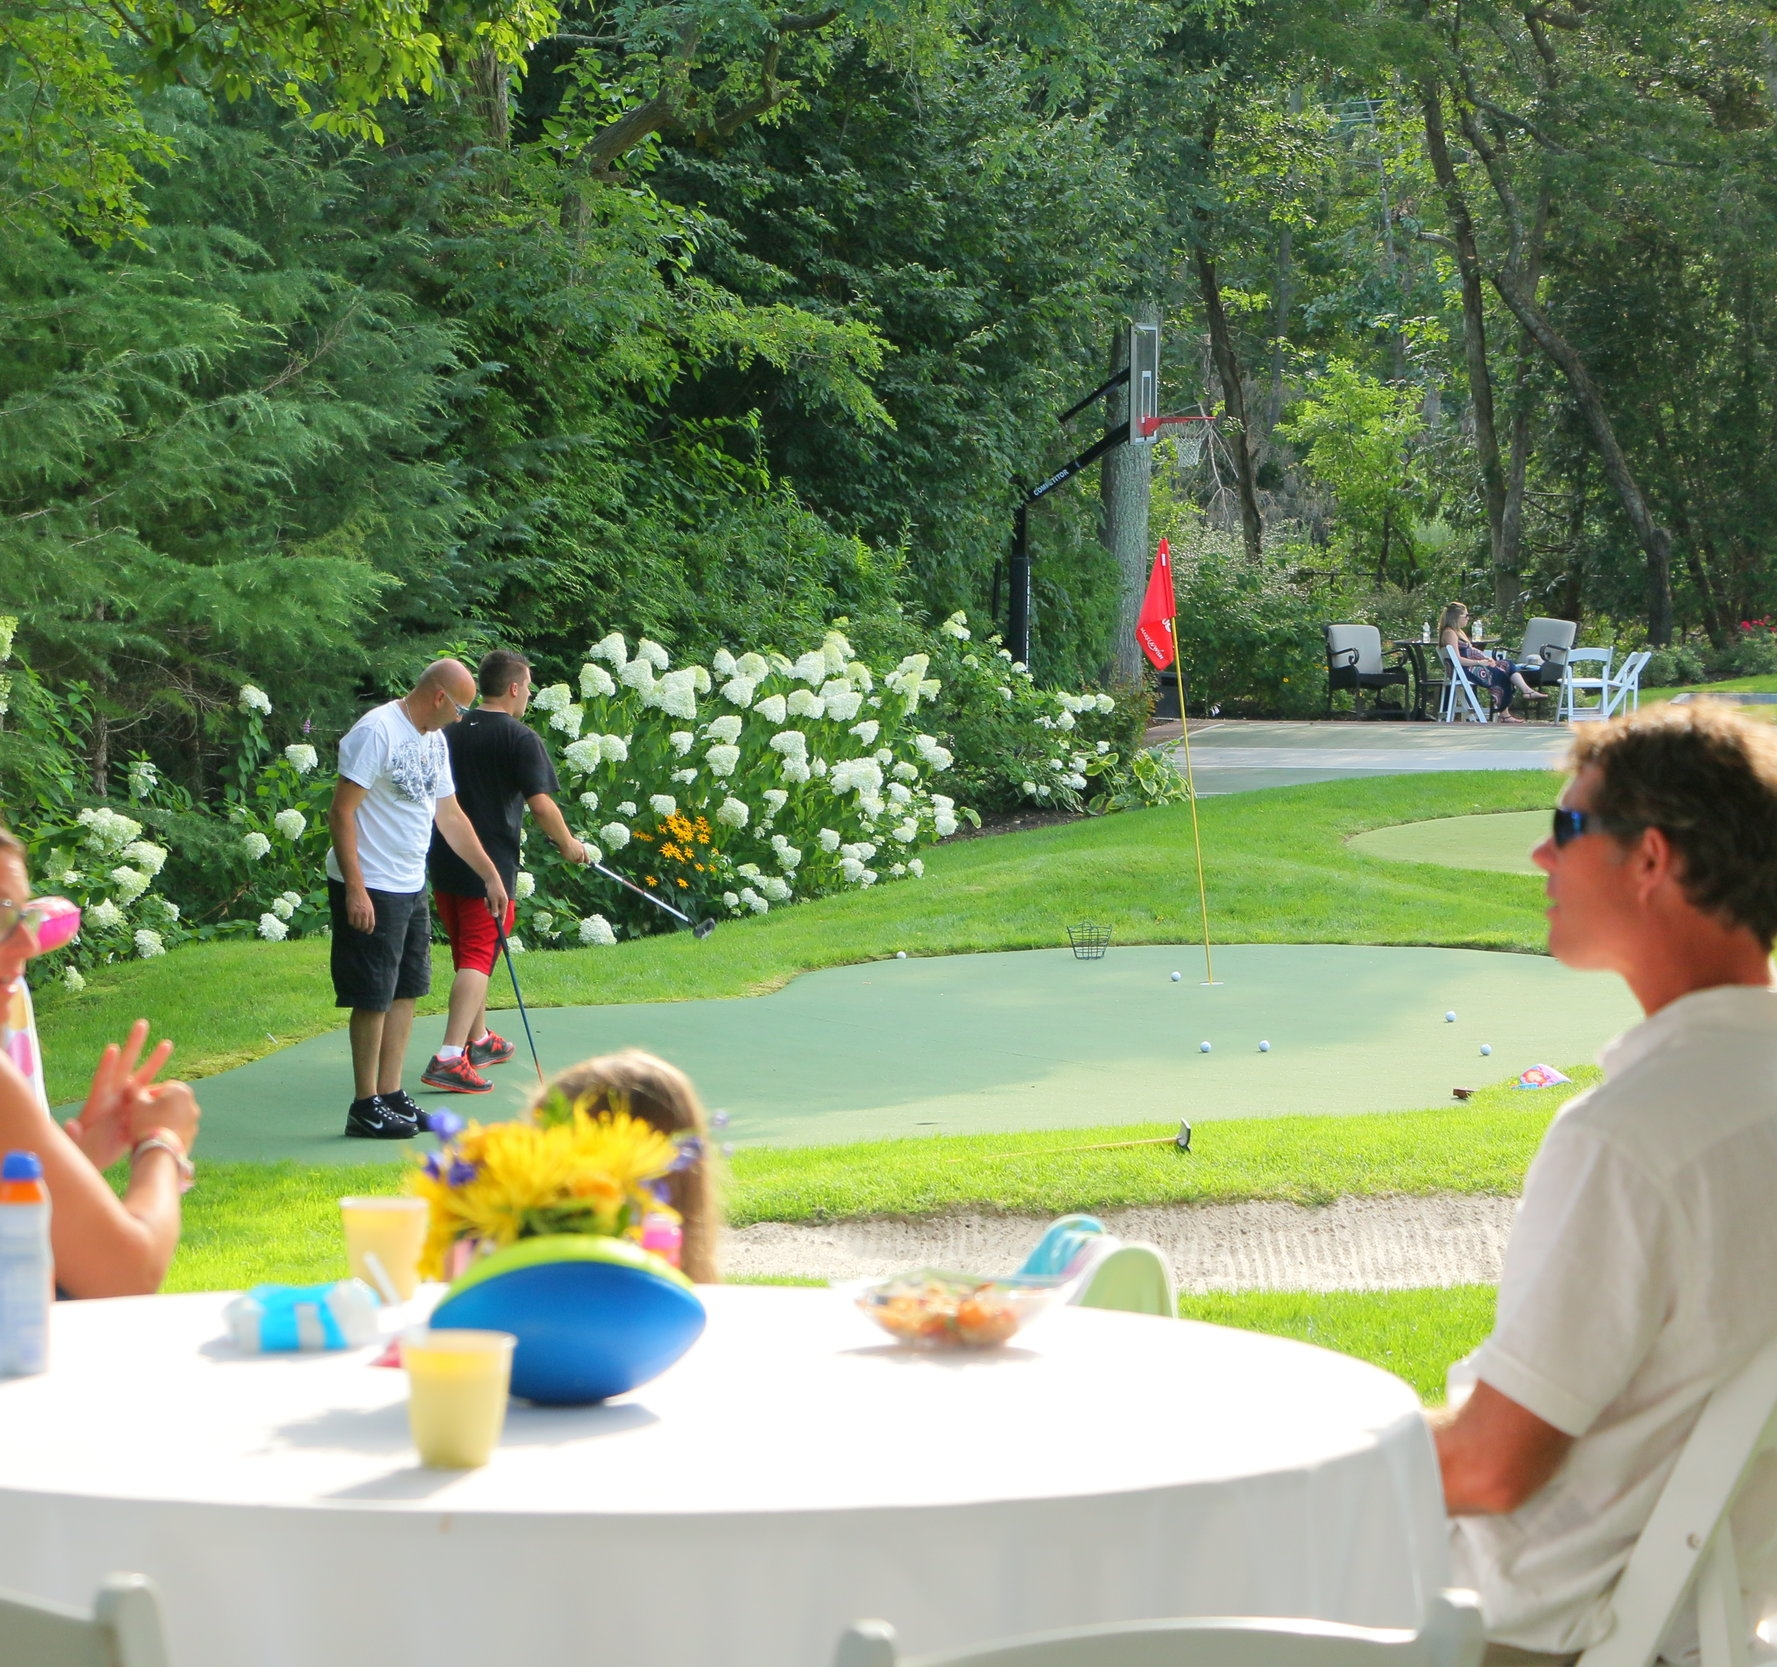 Top golf design landscape services in Long Island, NY